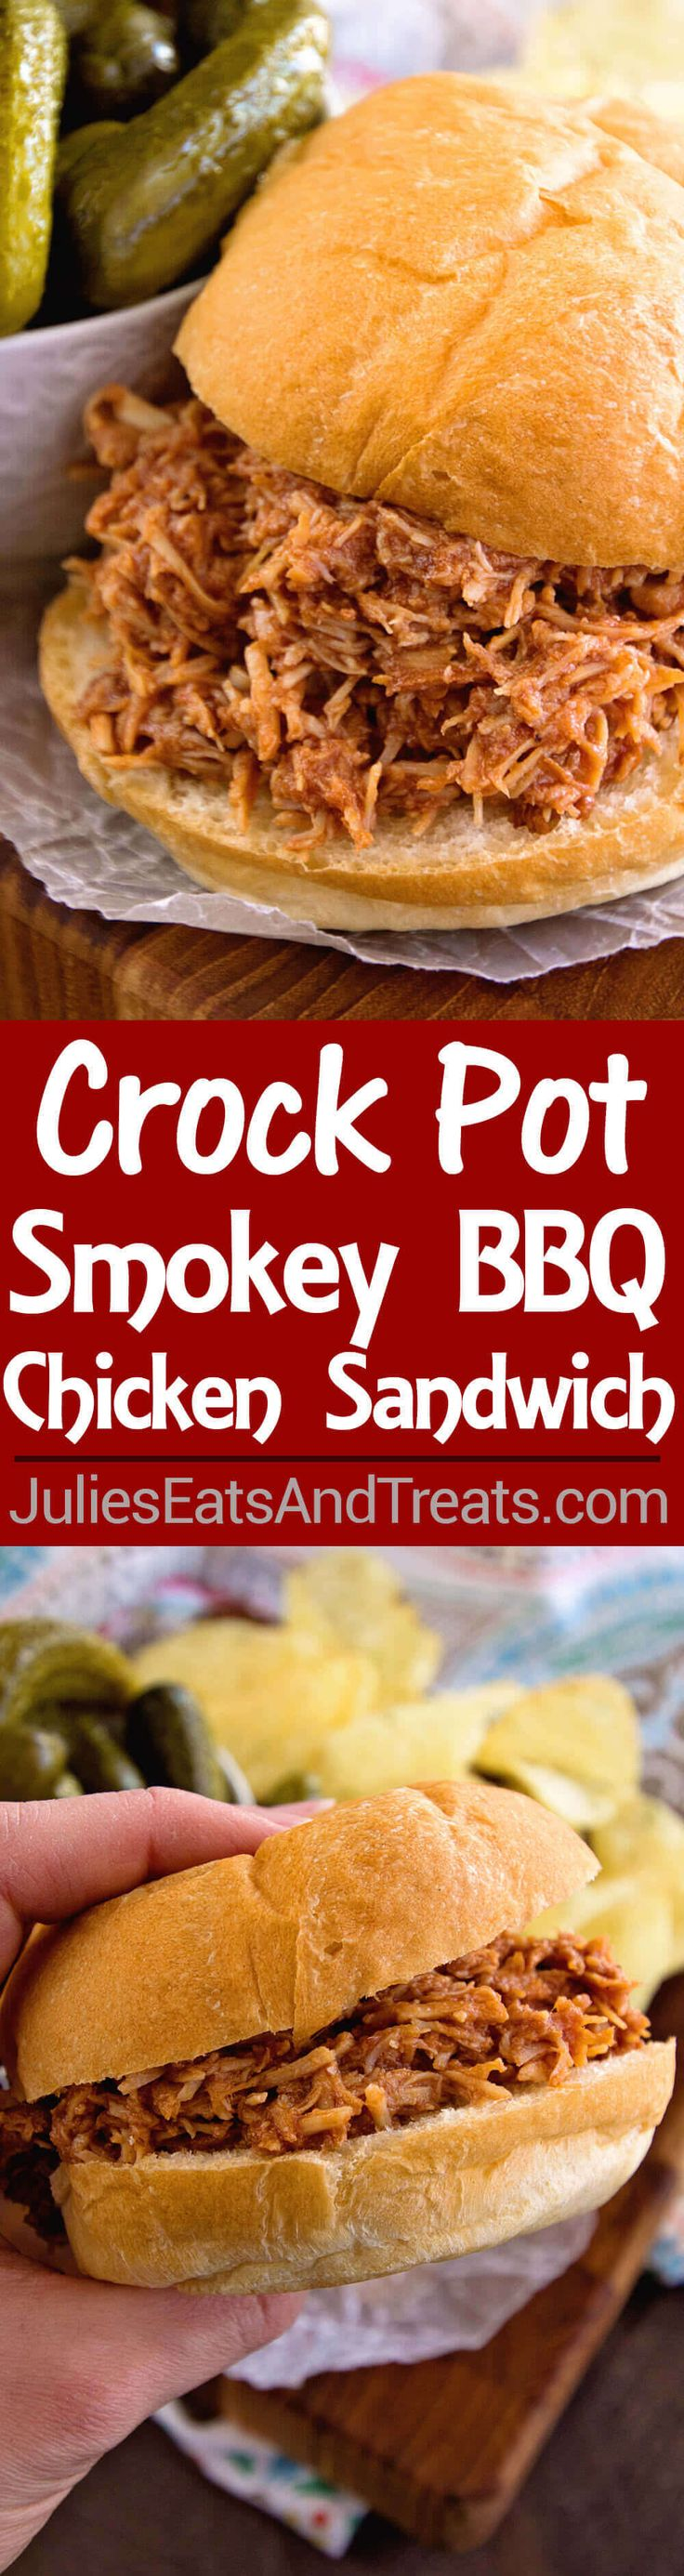 Crock Pot Smokey BBQ Shredded Chicken Sandwiches~ Easy, Shredded Chicken Sandwiches in Your Slow Cooker! Tender, Moist and Delicious Flavored with Liquid Smoke and Smothered in Barbecue Sauce! ~ http://www.julieseatsandtreats.com